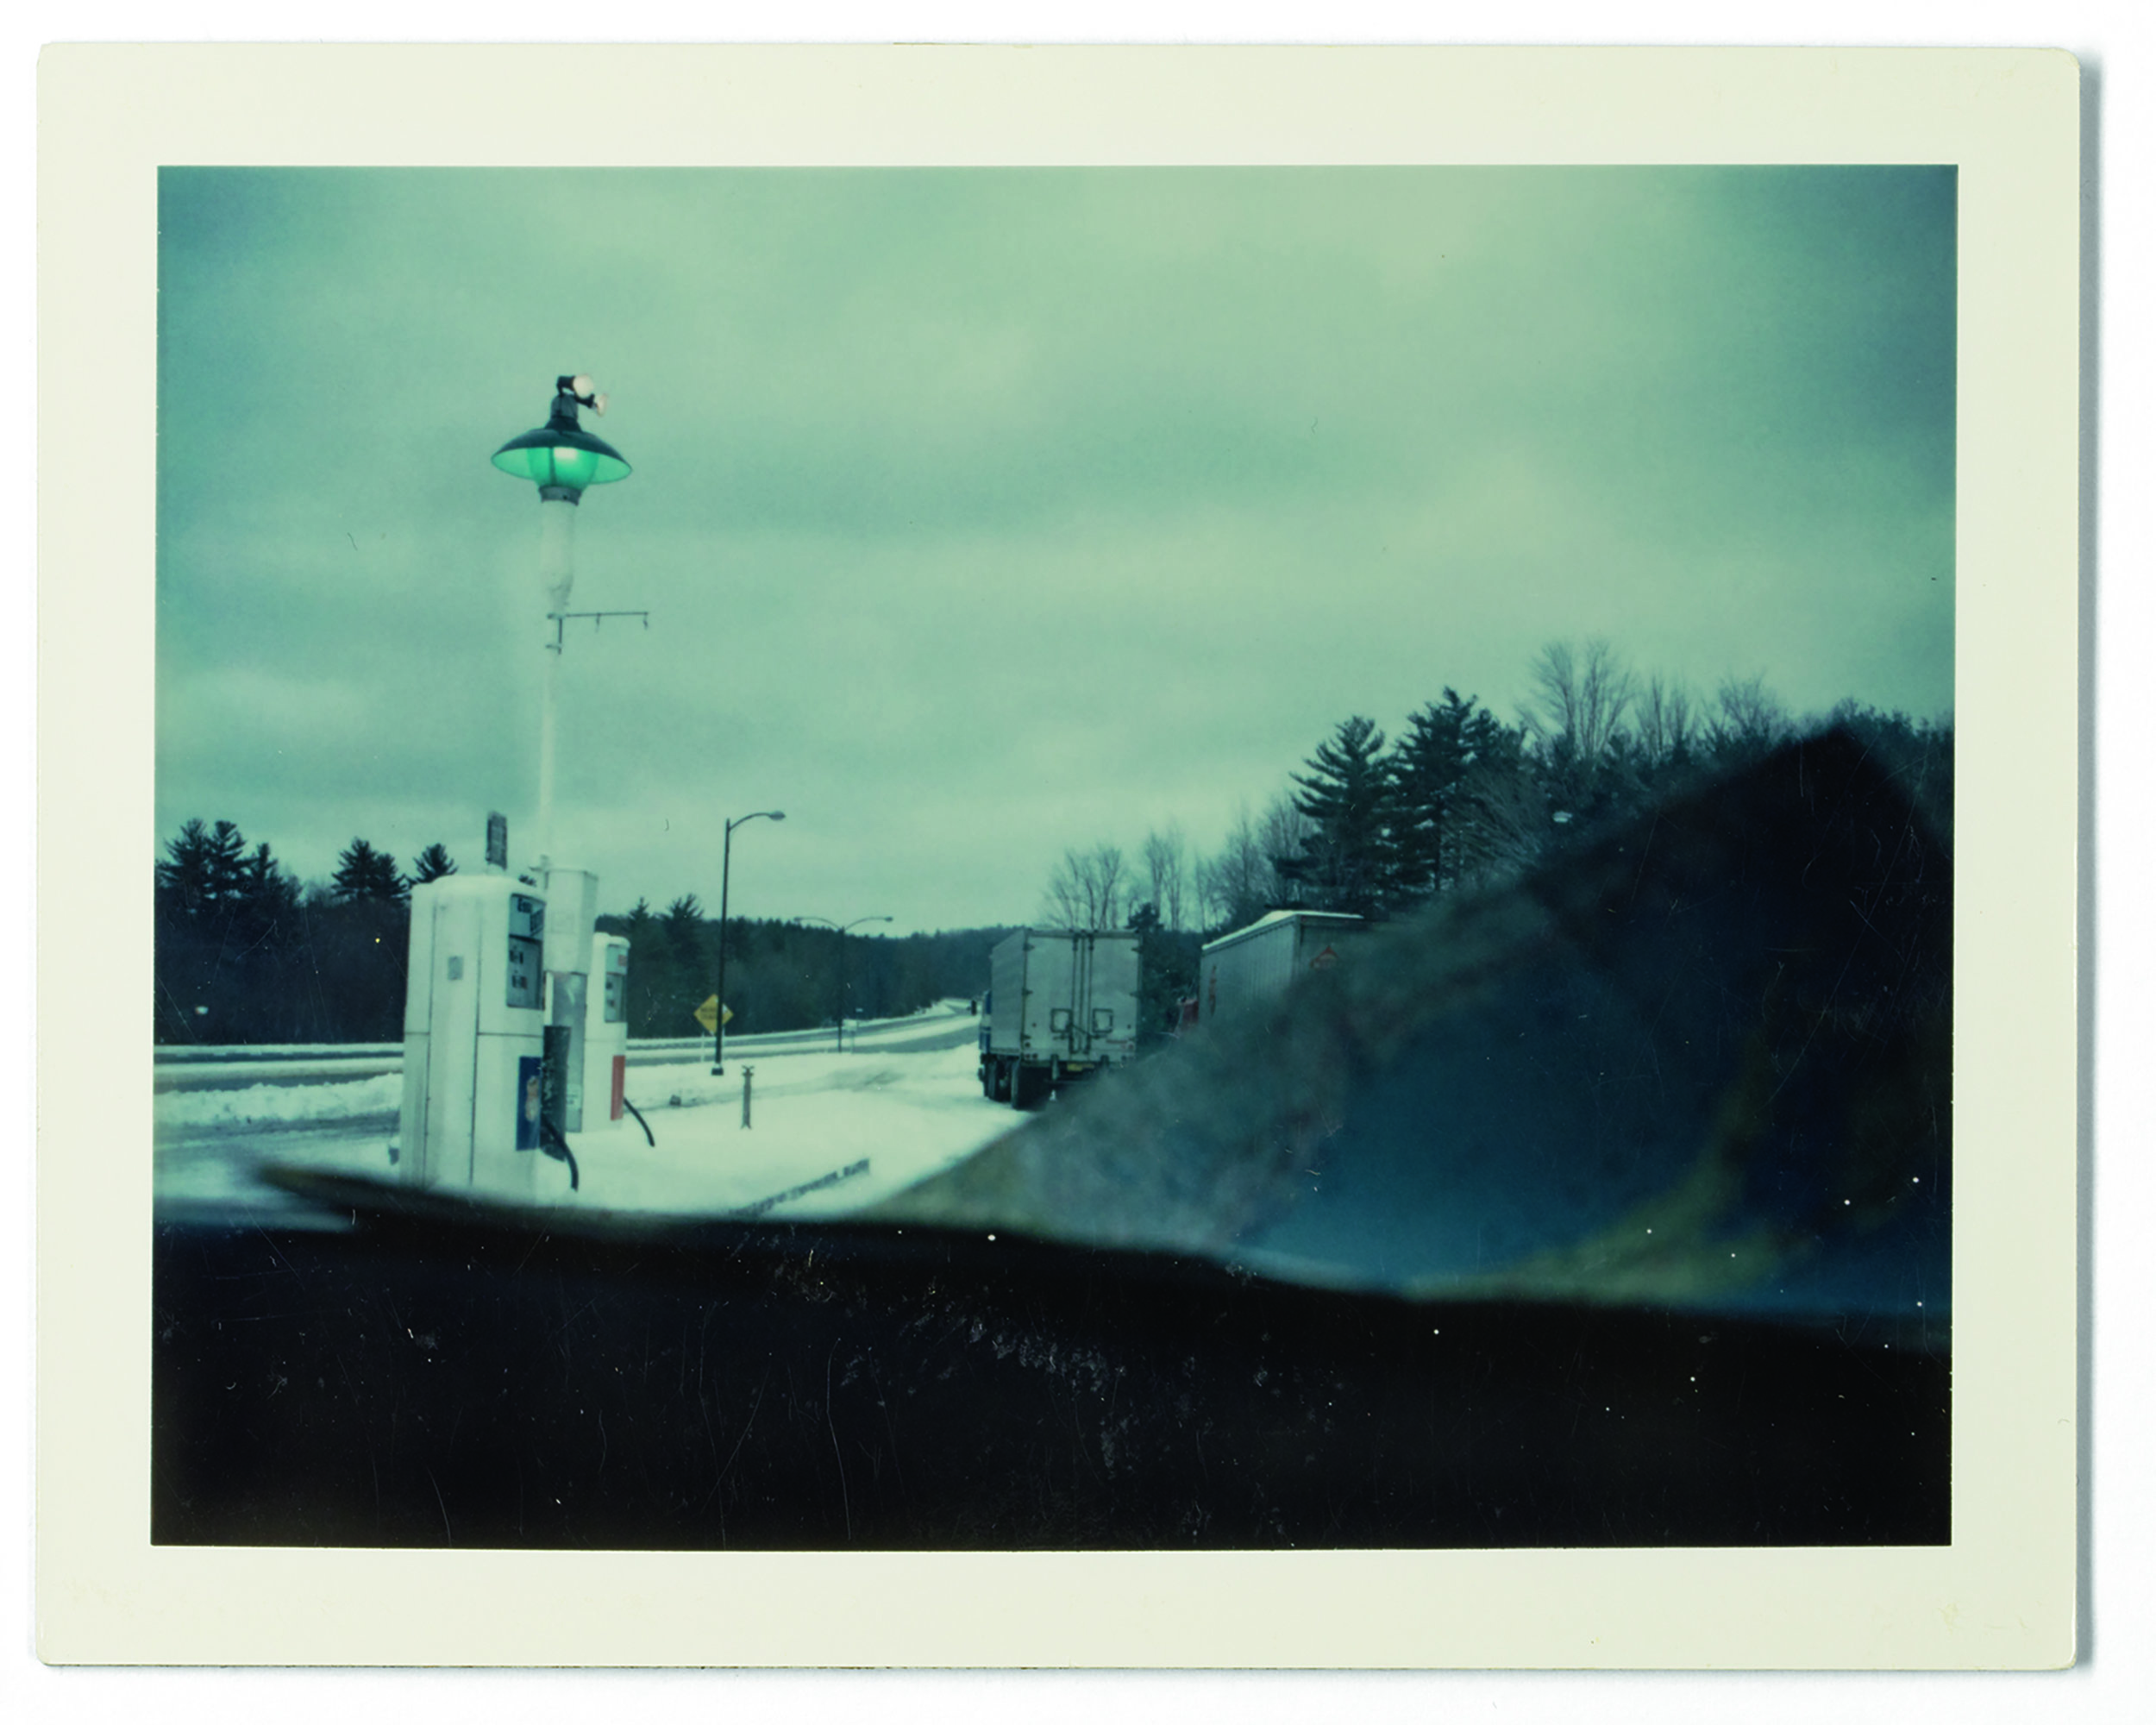 06_ Press Images l Wim Wenders l On the Road to New England, 1972.jpg